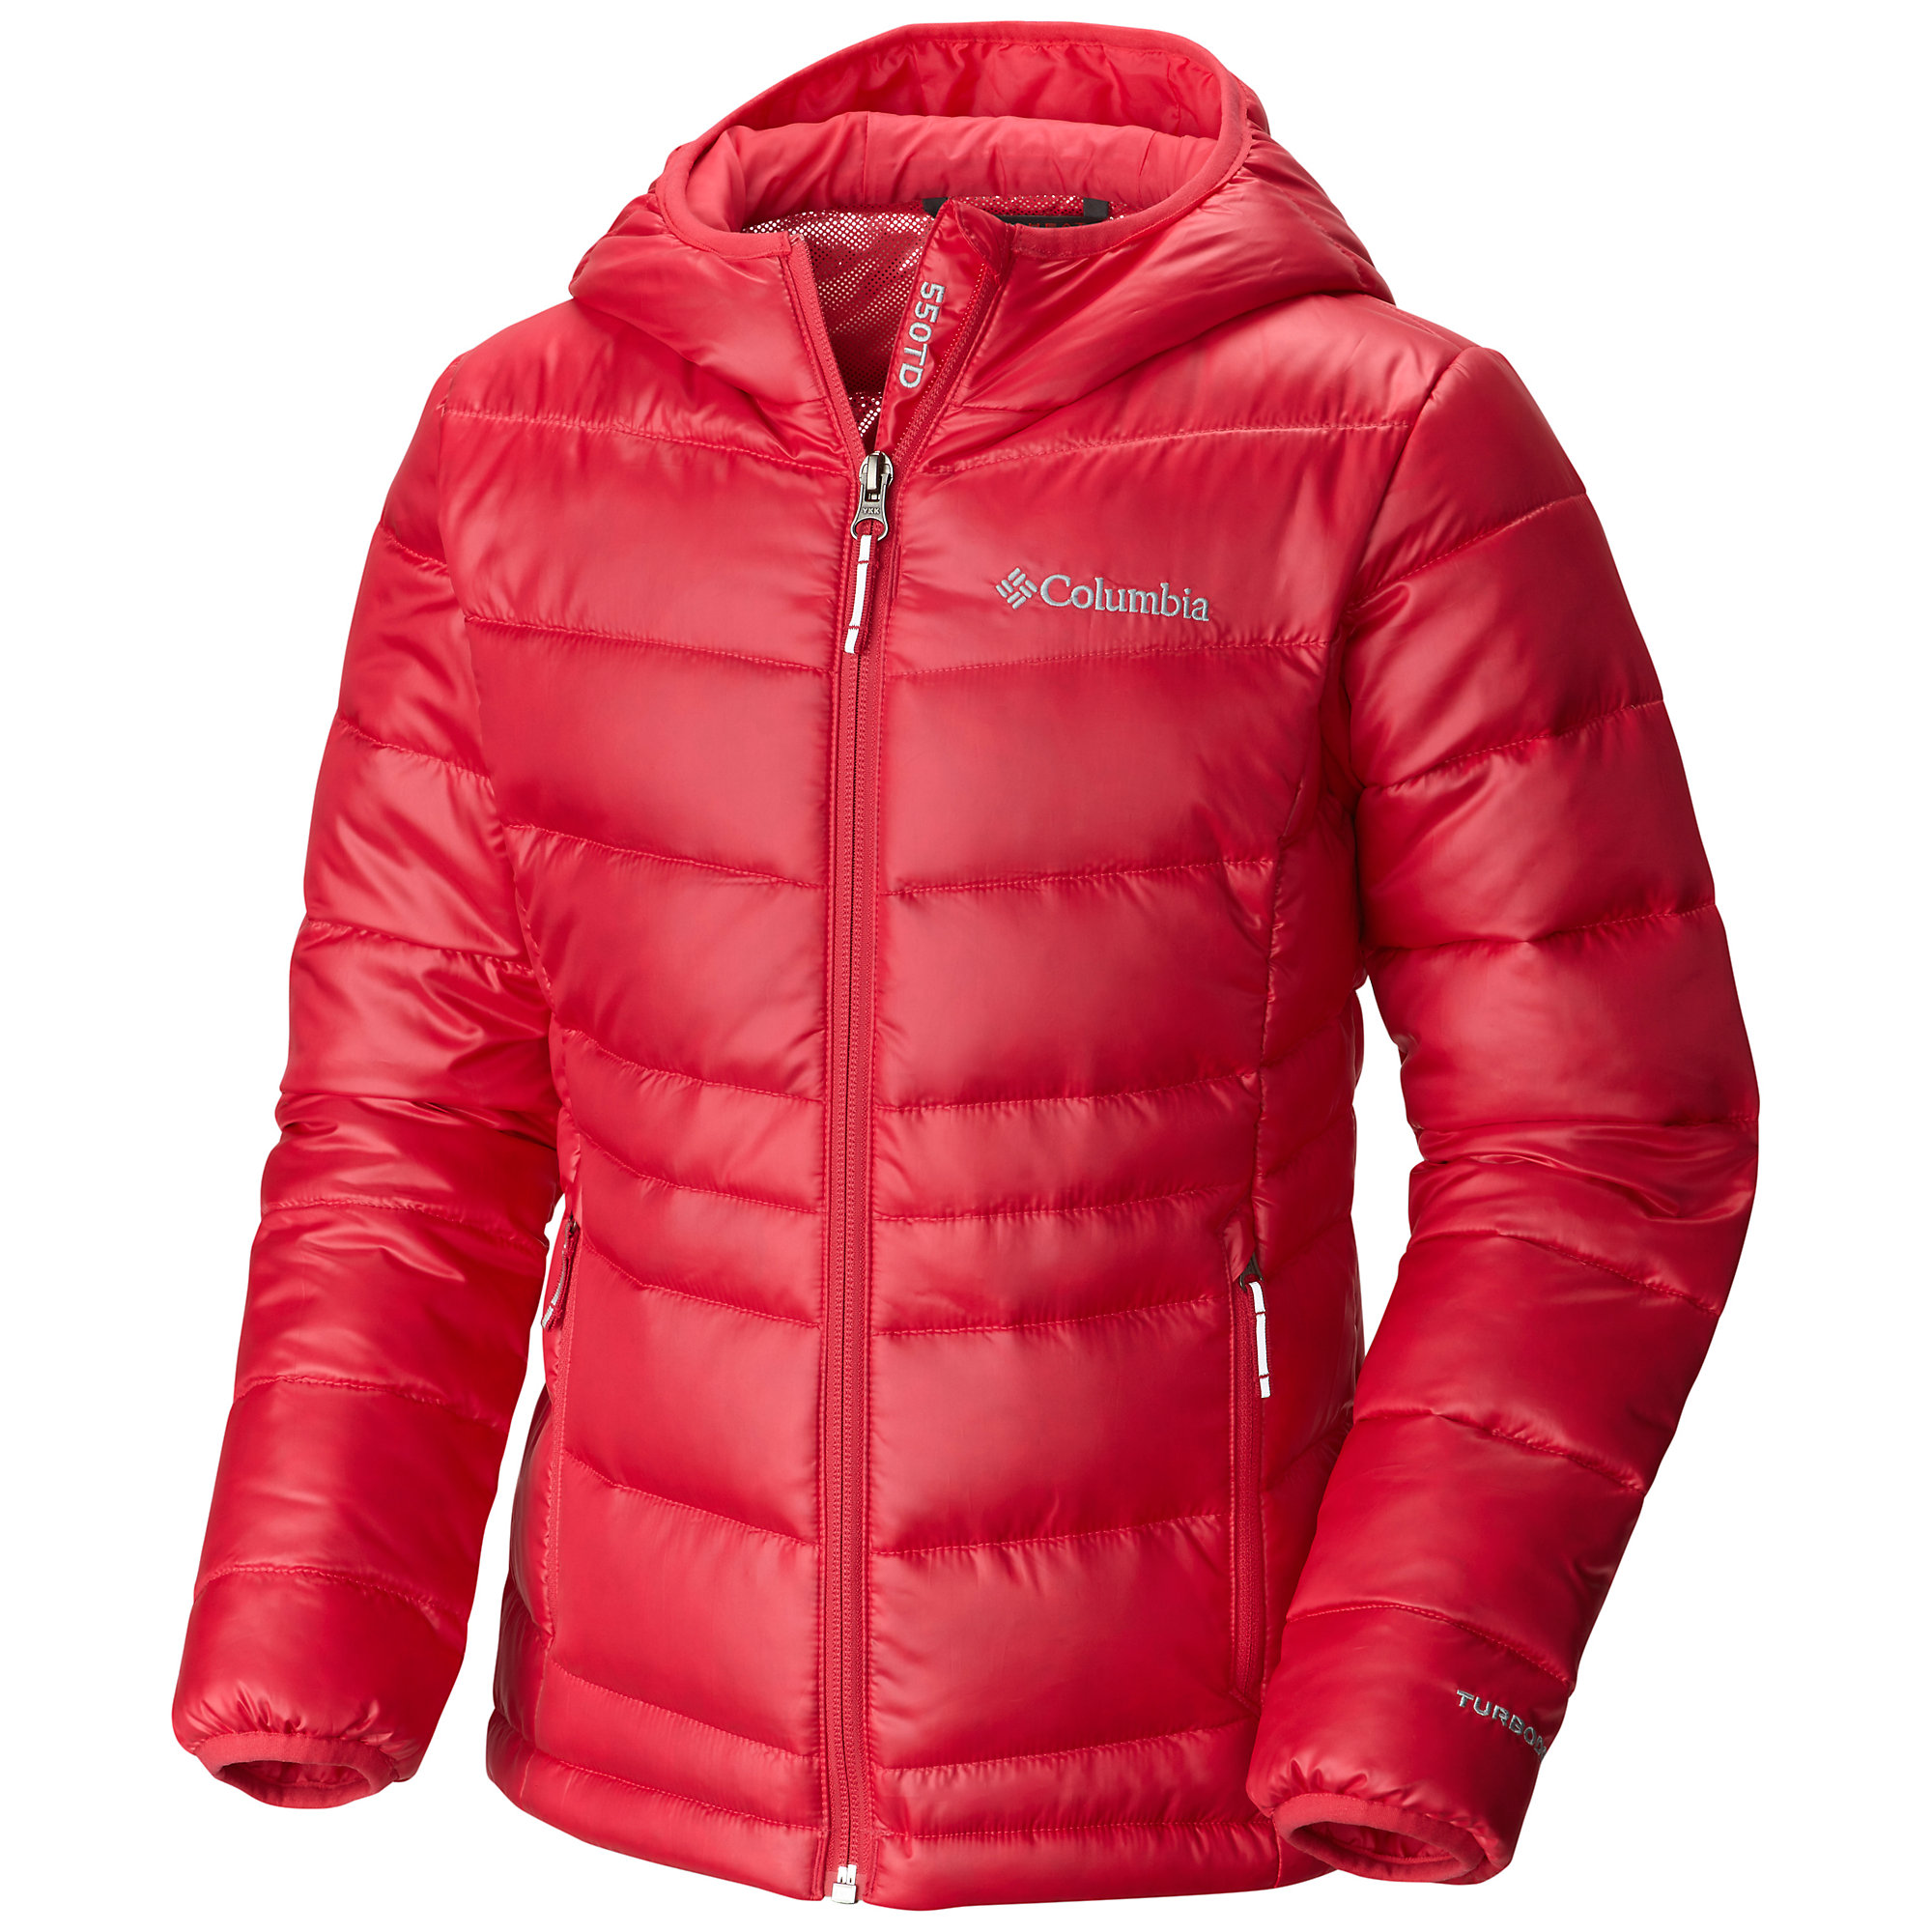 Columbia Gold 550 TurboDown Hooded Down Jacket